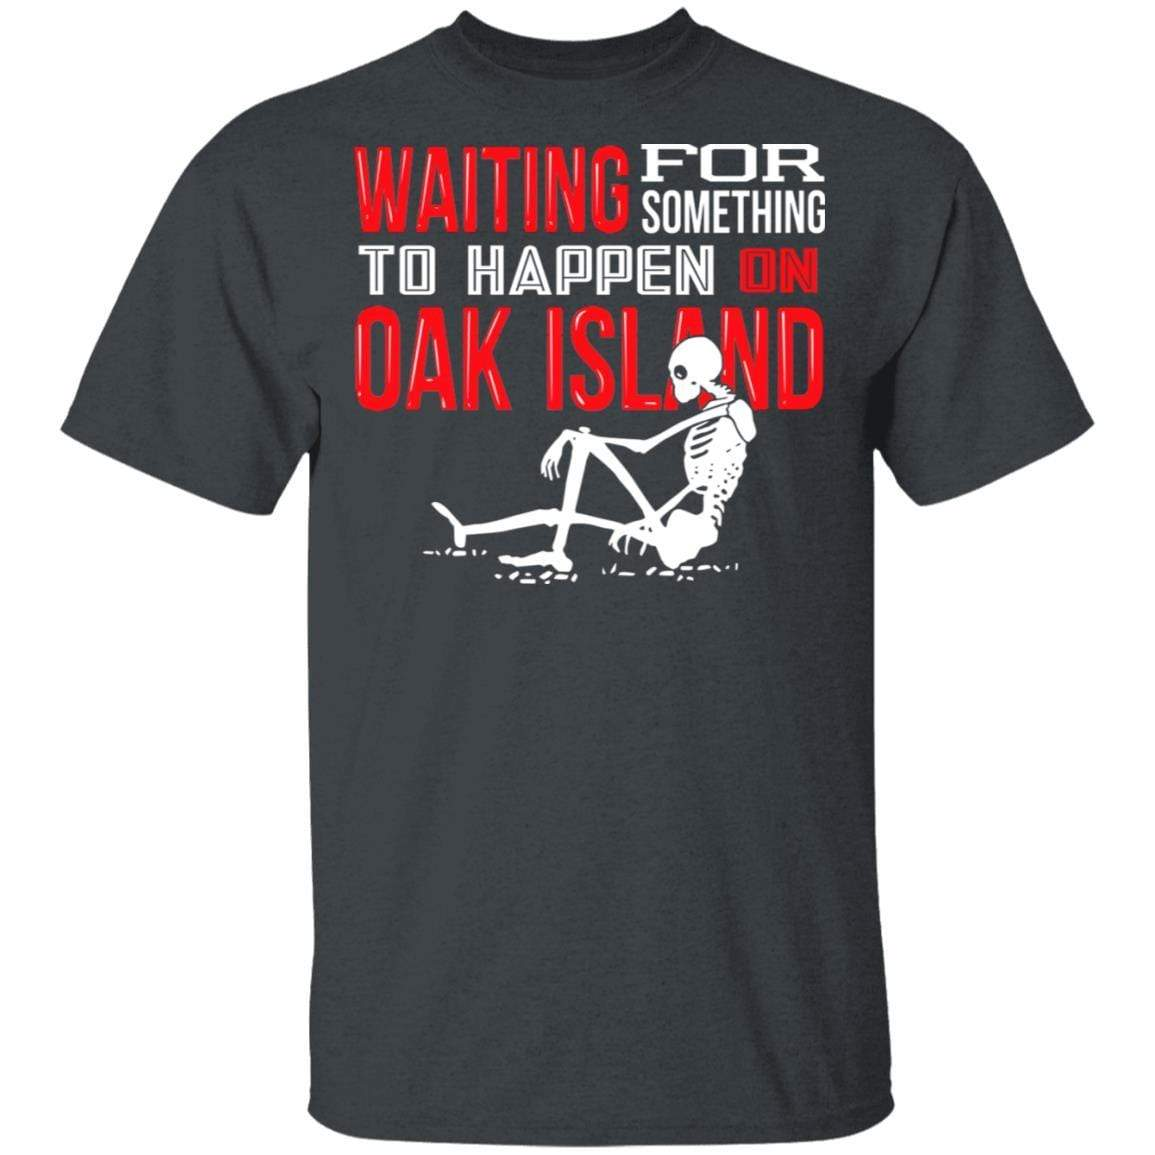 Waiting For Something To Happen On Oak Island T-Shirts, Hoodies 1049-9957-91587324-48192 - Tee Ript